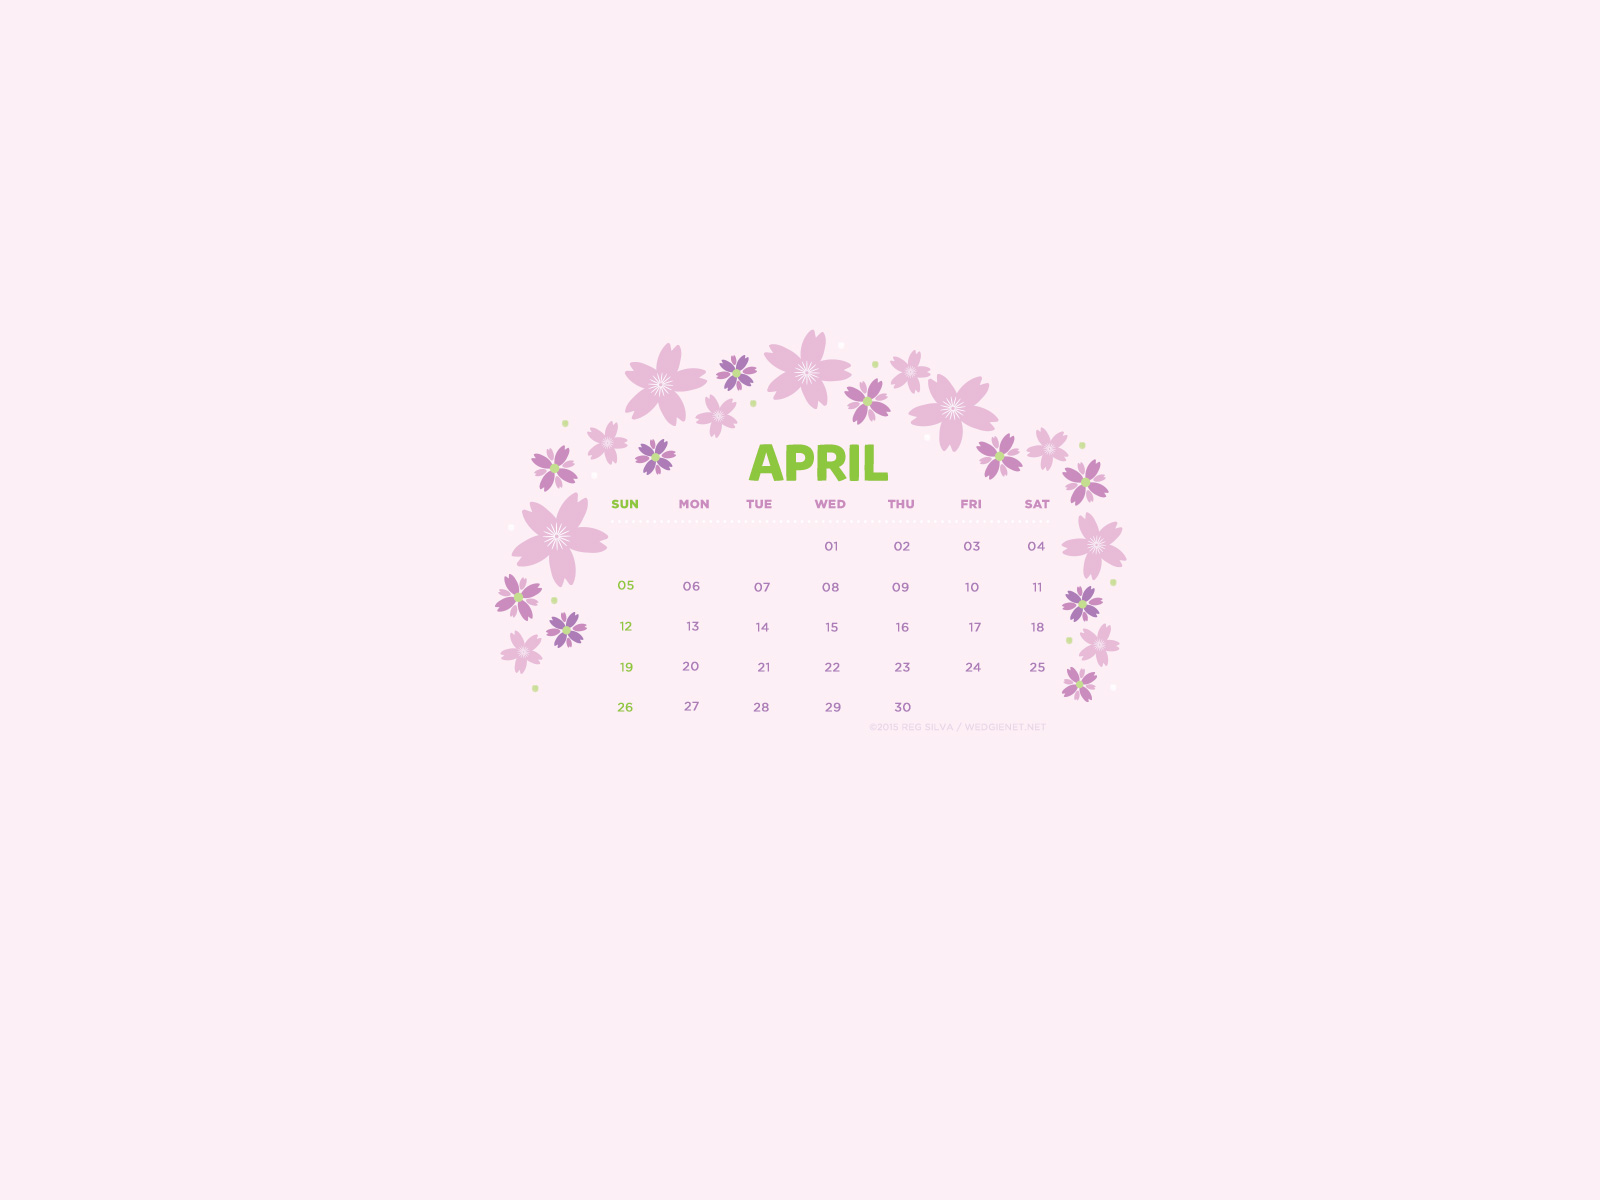 april 2015 desktop iphone ipad lock screen calendar wallpaper